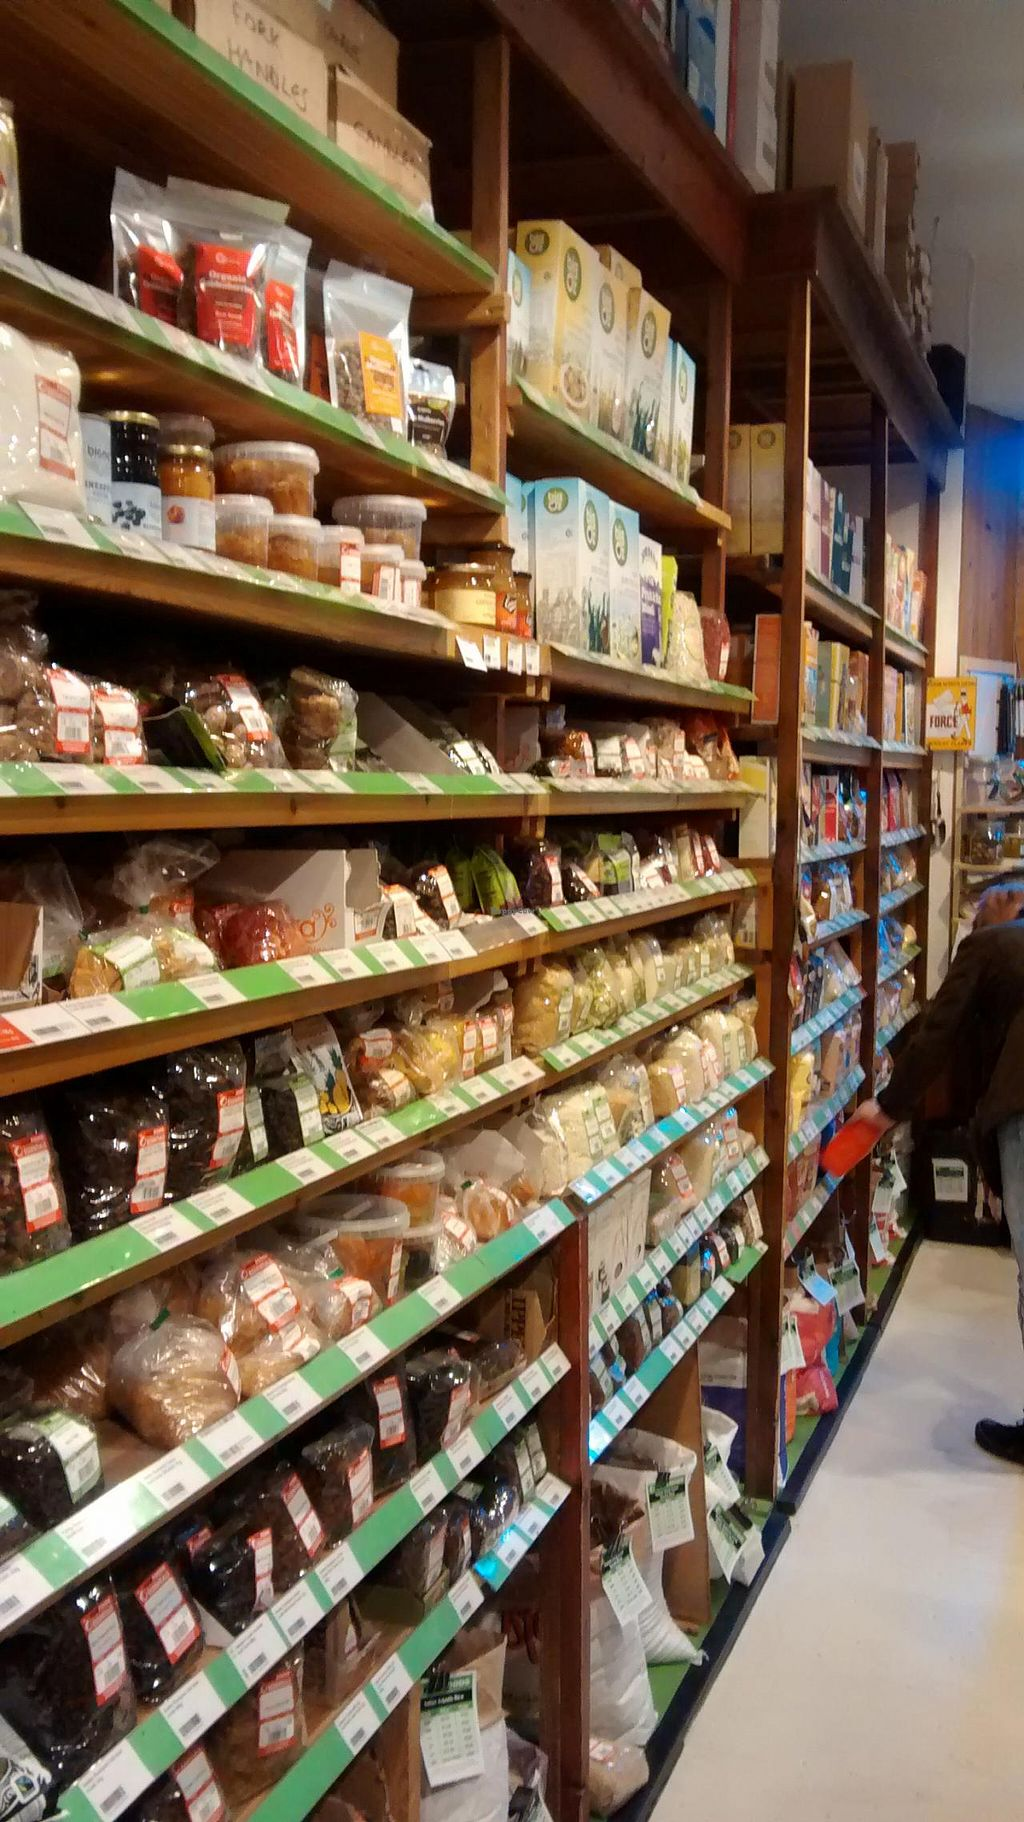 """Photo of Real Foods  by <a href=""""/members/profile/craigmc"""">craigmc</a> <br/>Great selection  <br/> February 6, 2014  - <a href='/contact/abuse/image/1088/63796'>Report</a>"""